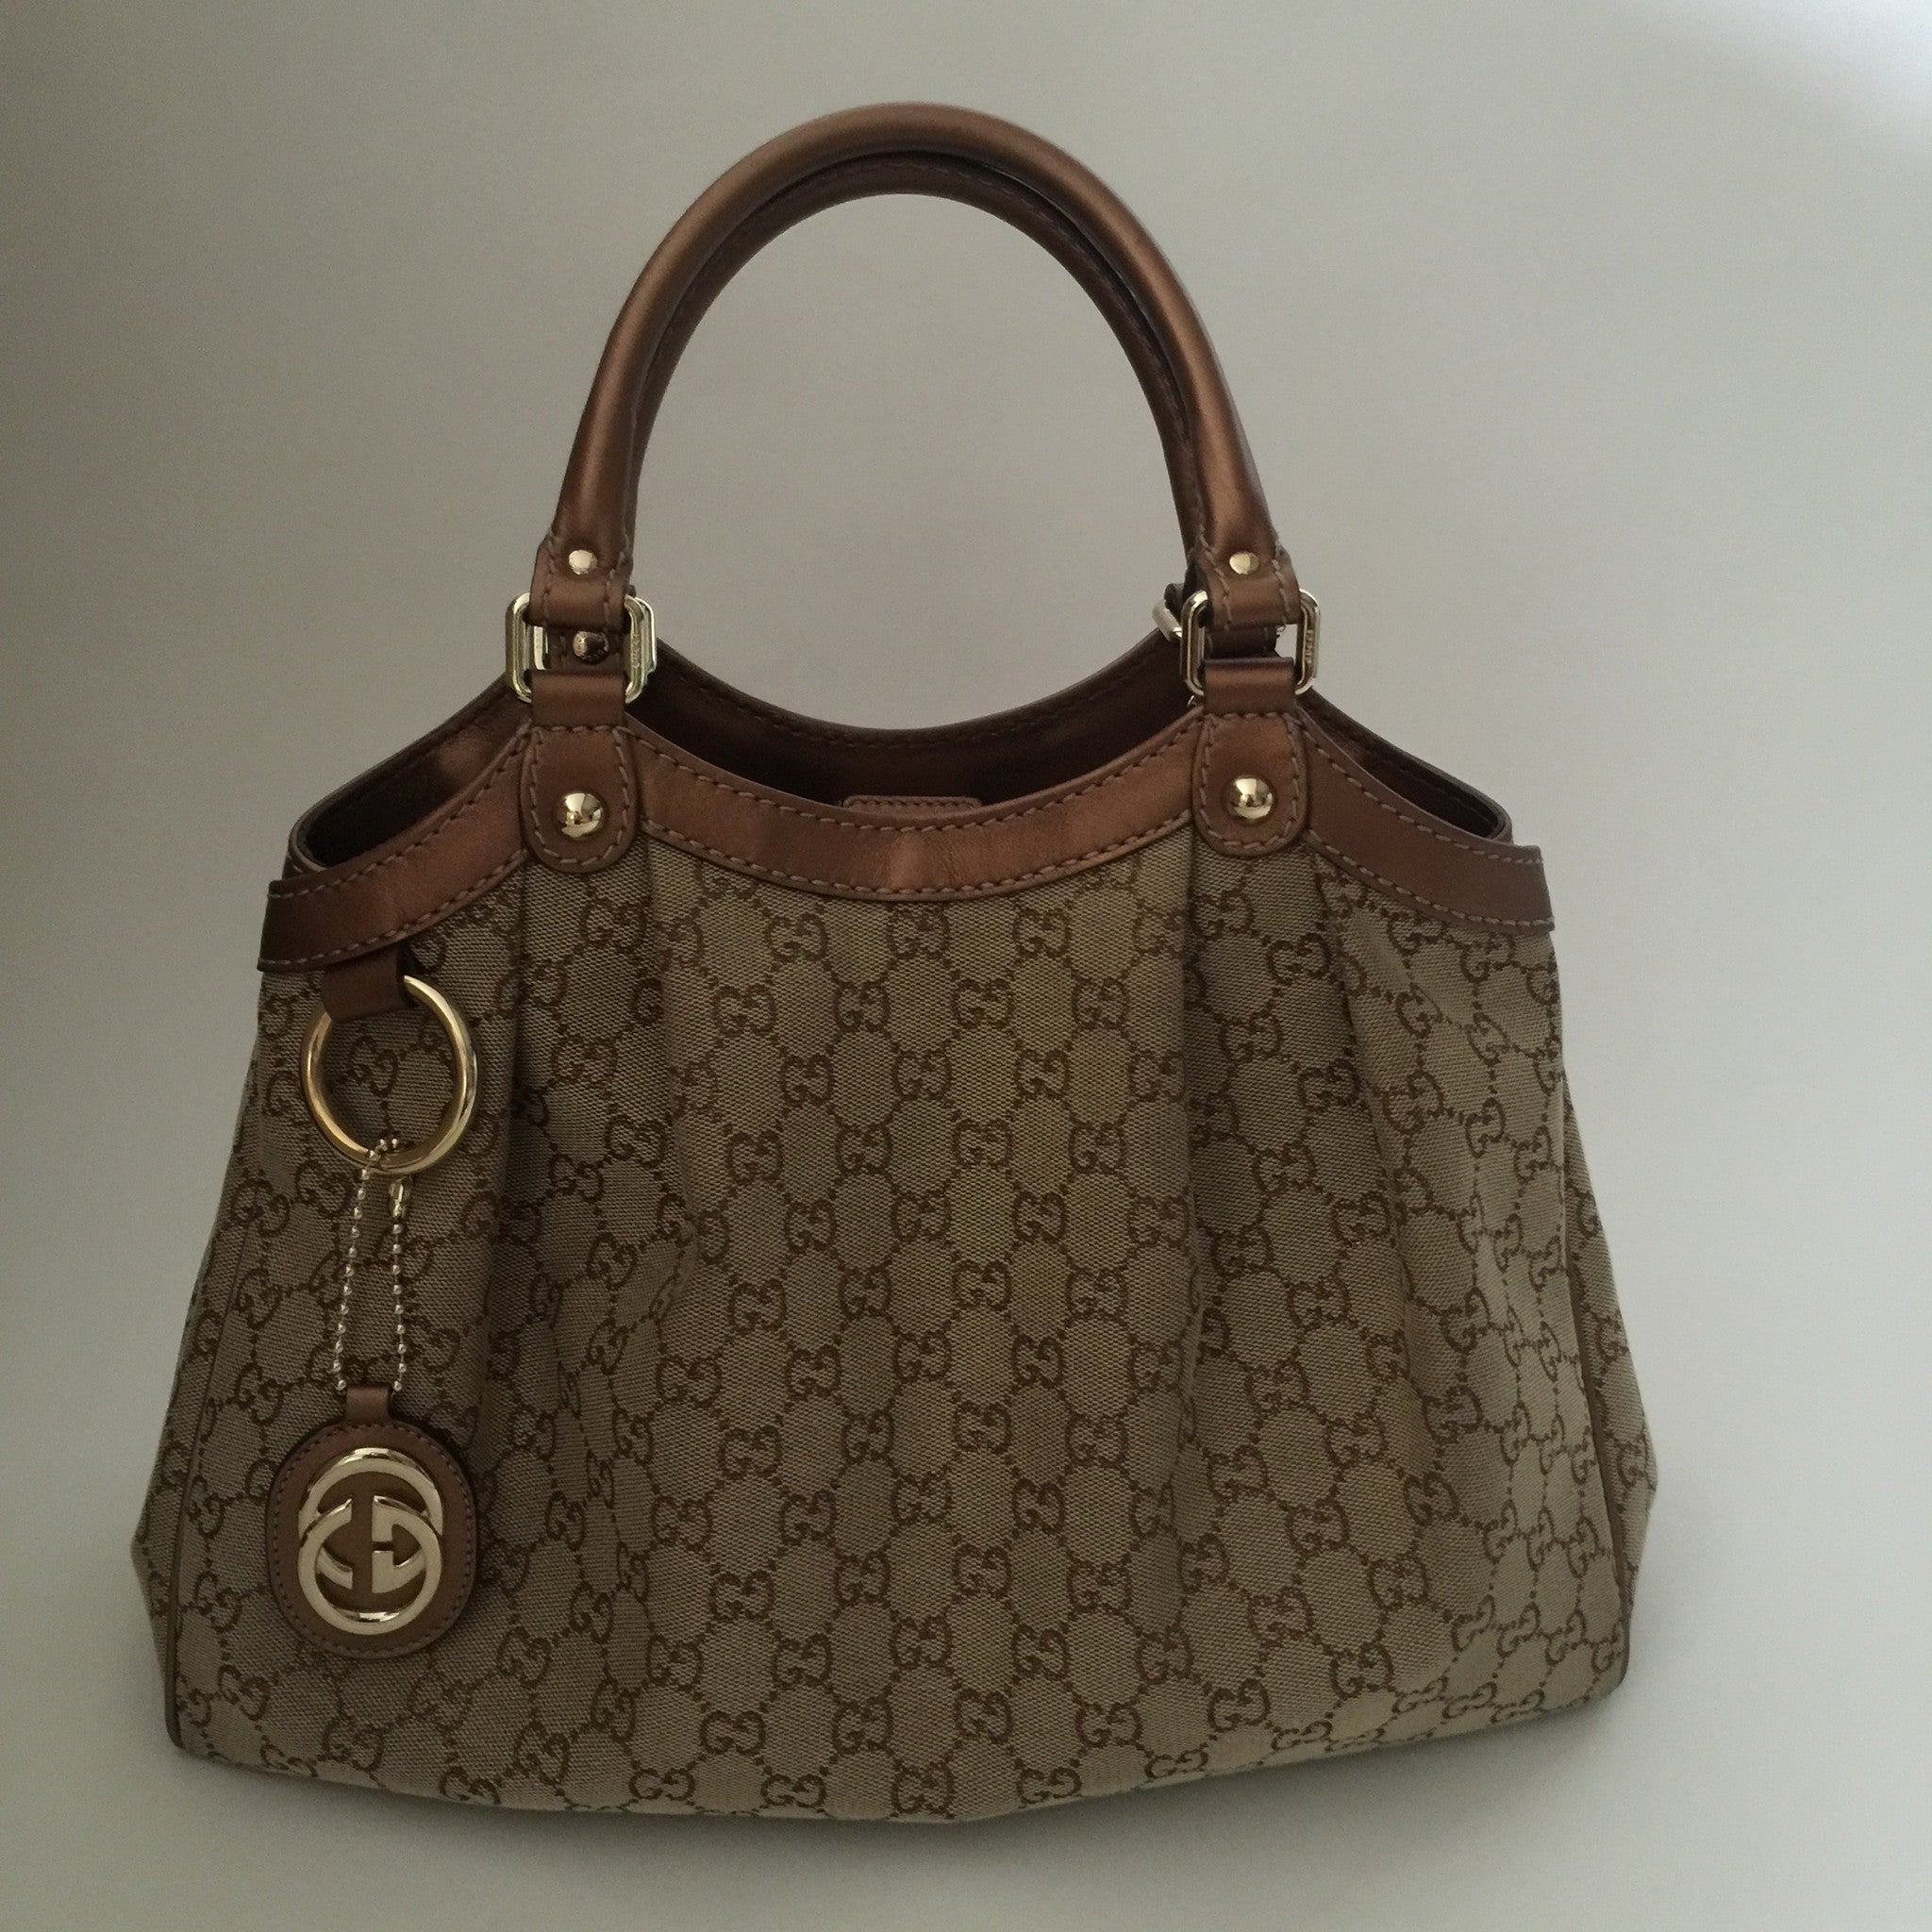 Authentic GUCCI Sukey Bag